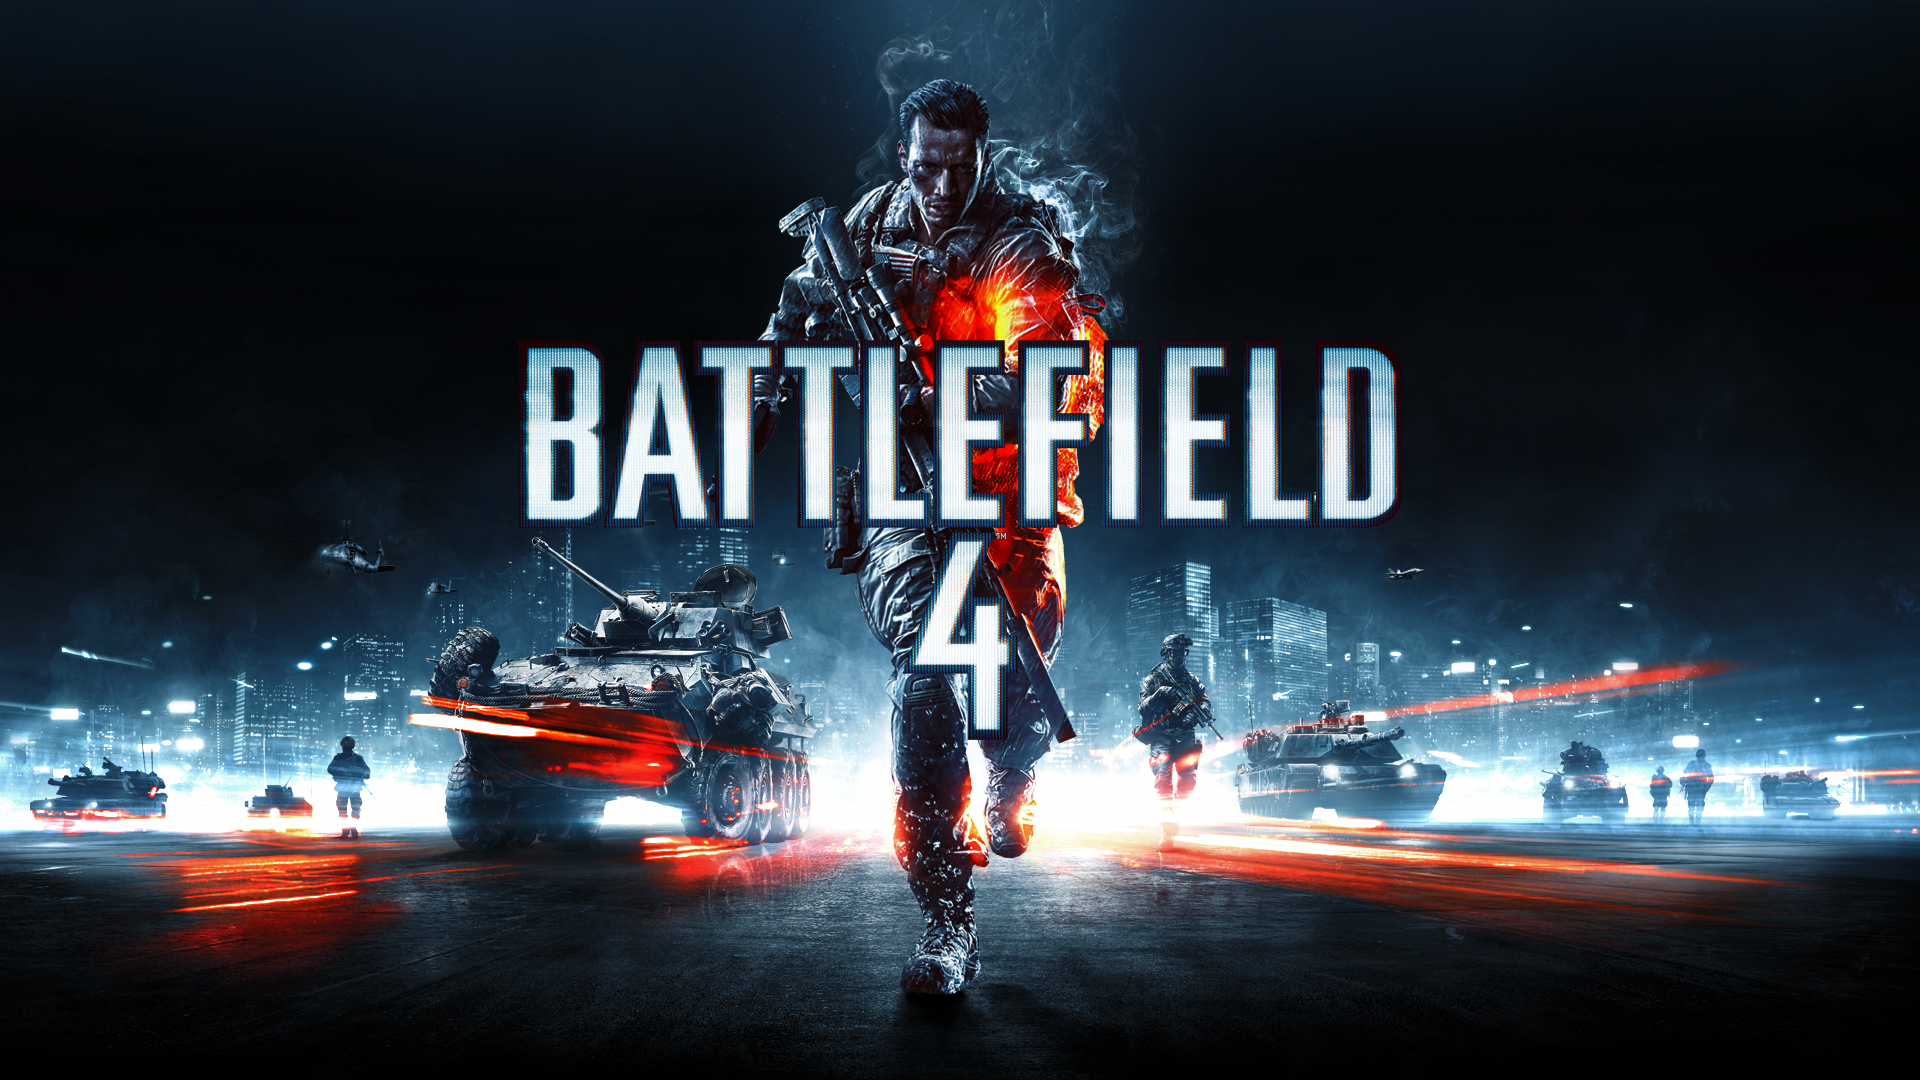 Download Wallpaper 1280x1280 Battlefield 4 Game Ea: Pin By AllGames4.Me On Www.AllGames4.Me Full Free Games